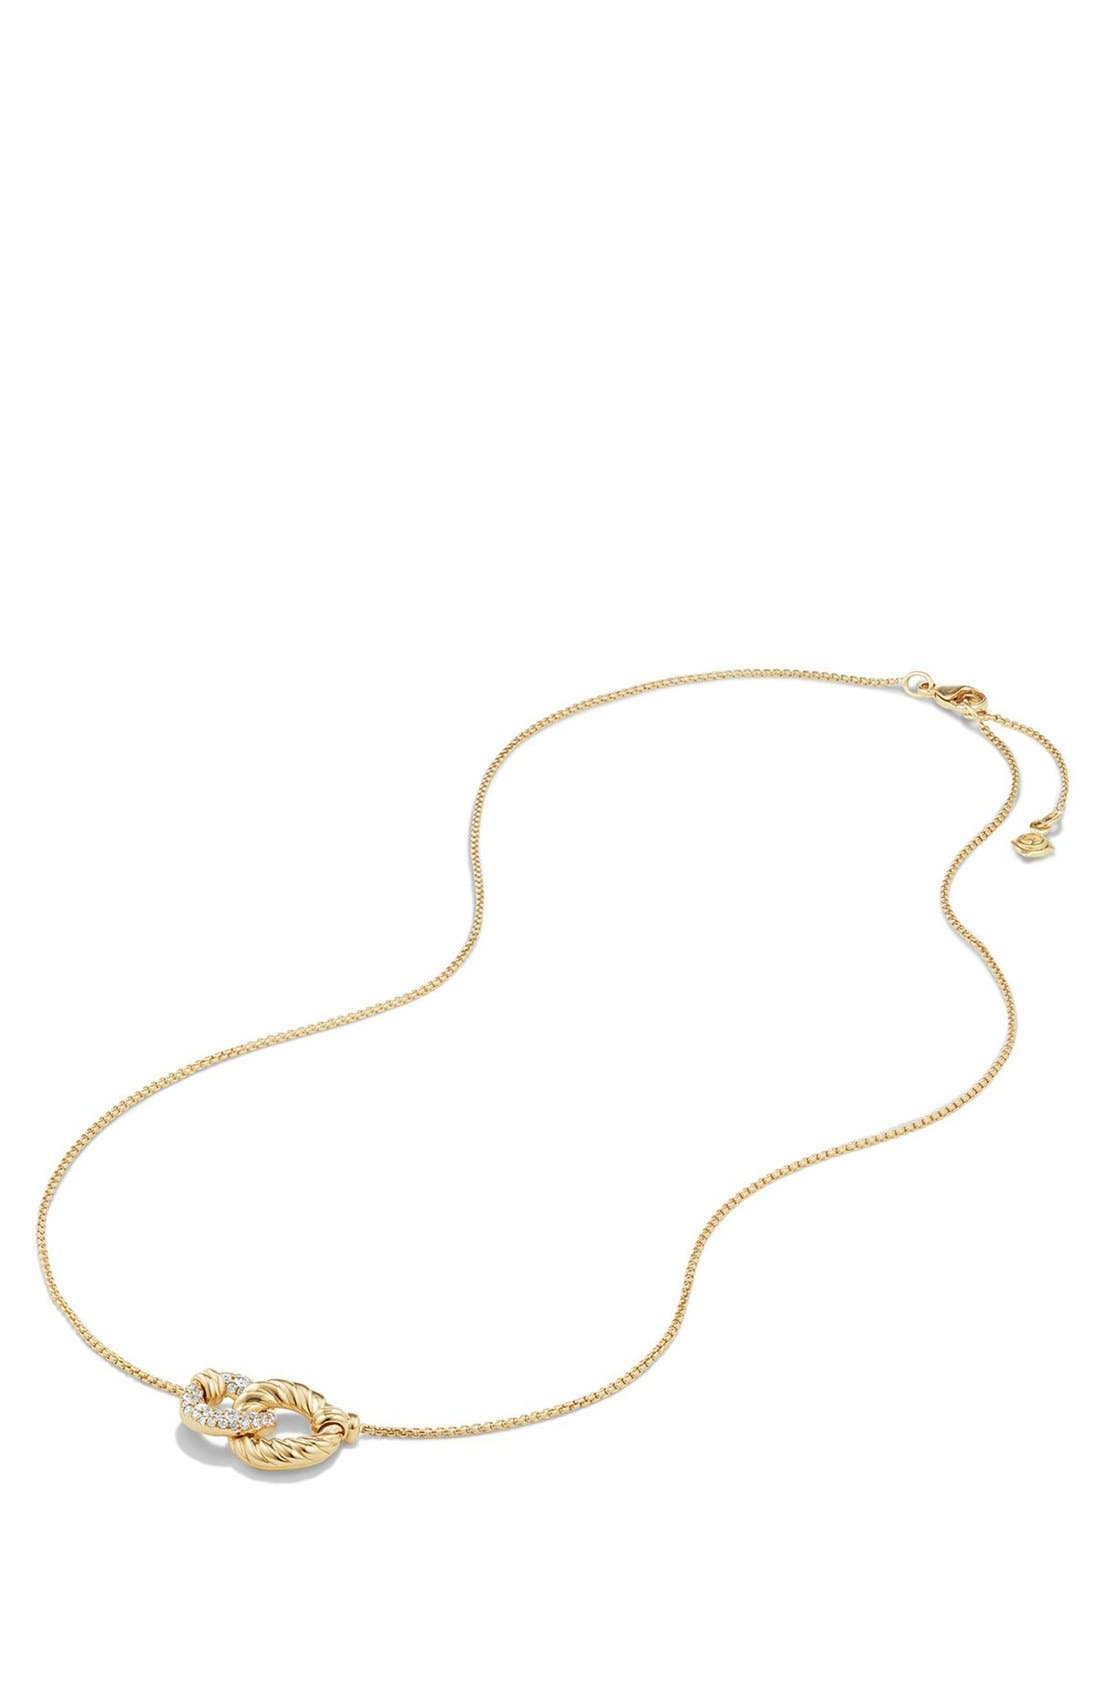 Alternate Image 2  - David Yurman Belmont Extra-Small Double Curb Link Necklace with Diamonds in 18K Gold